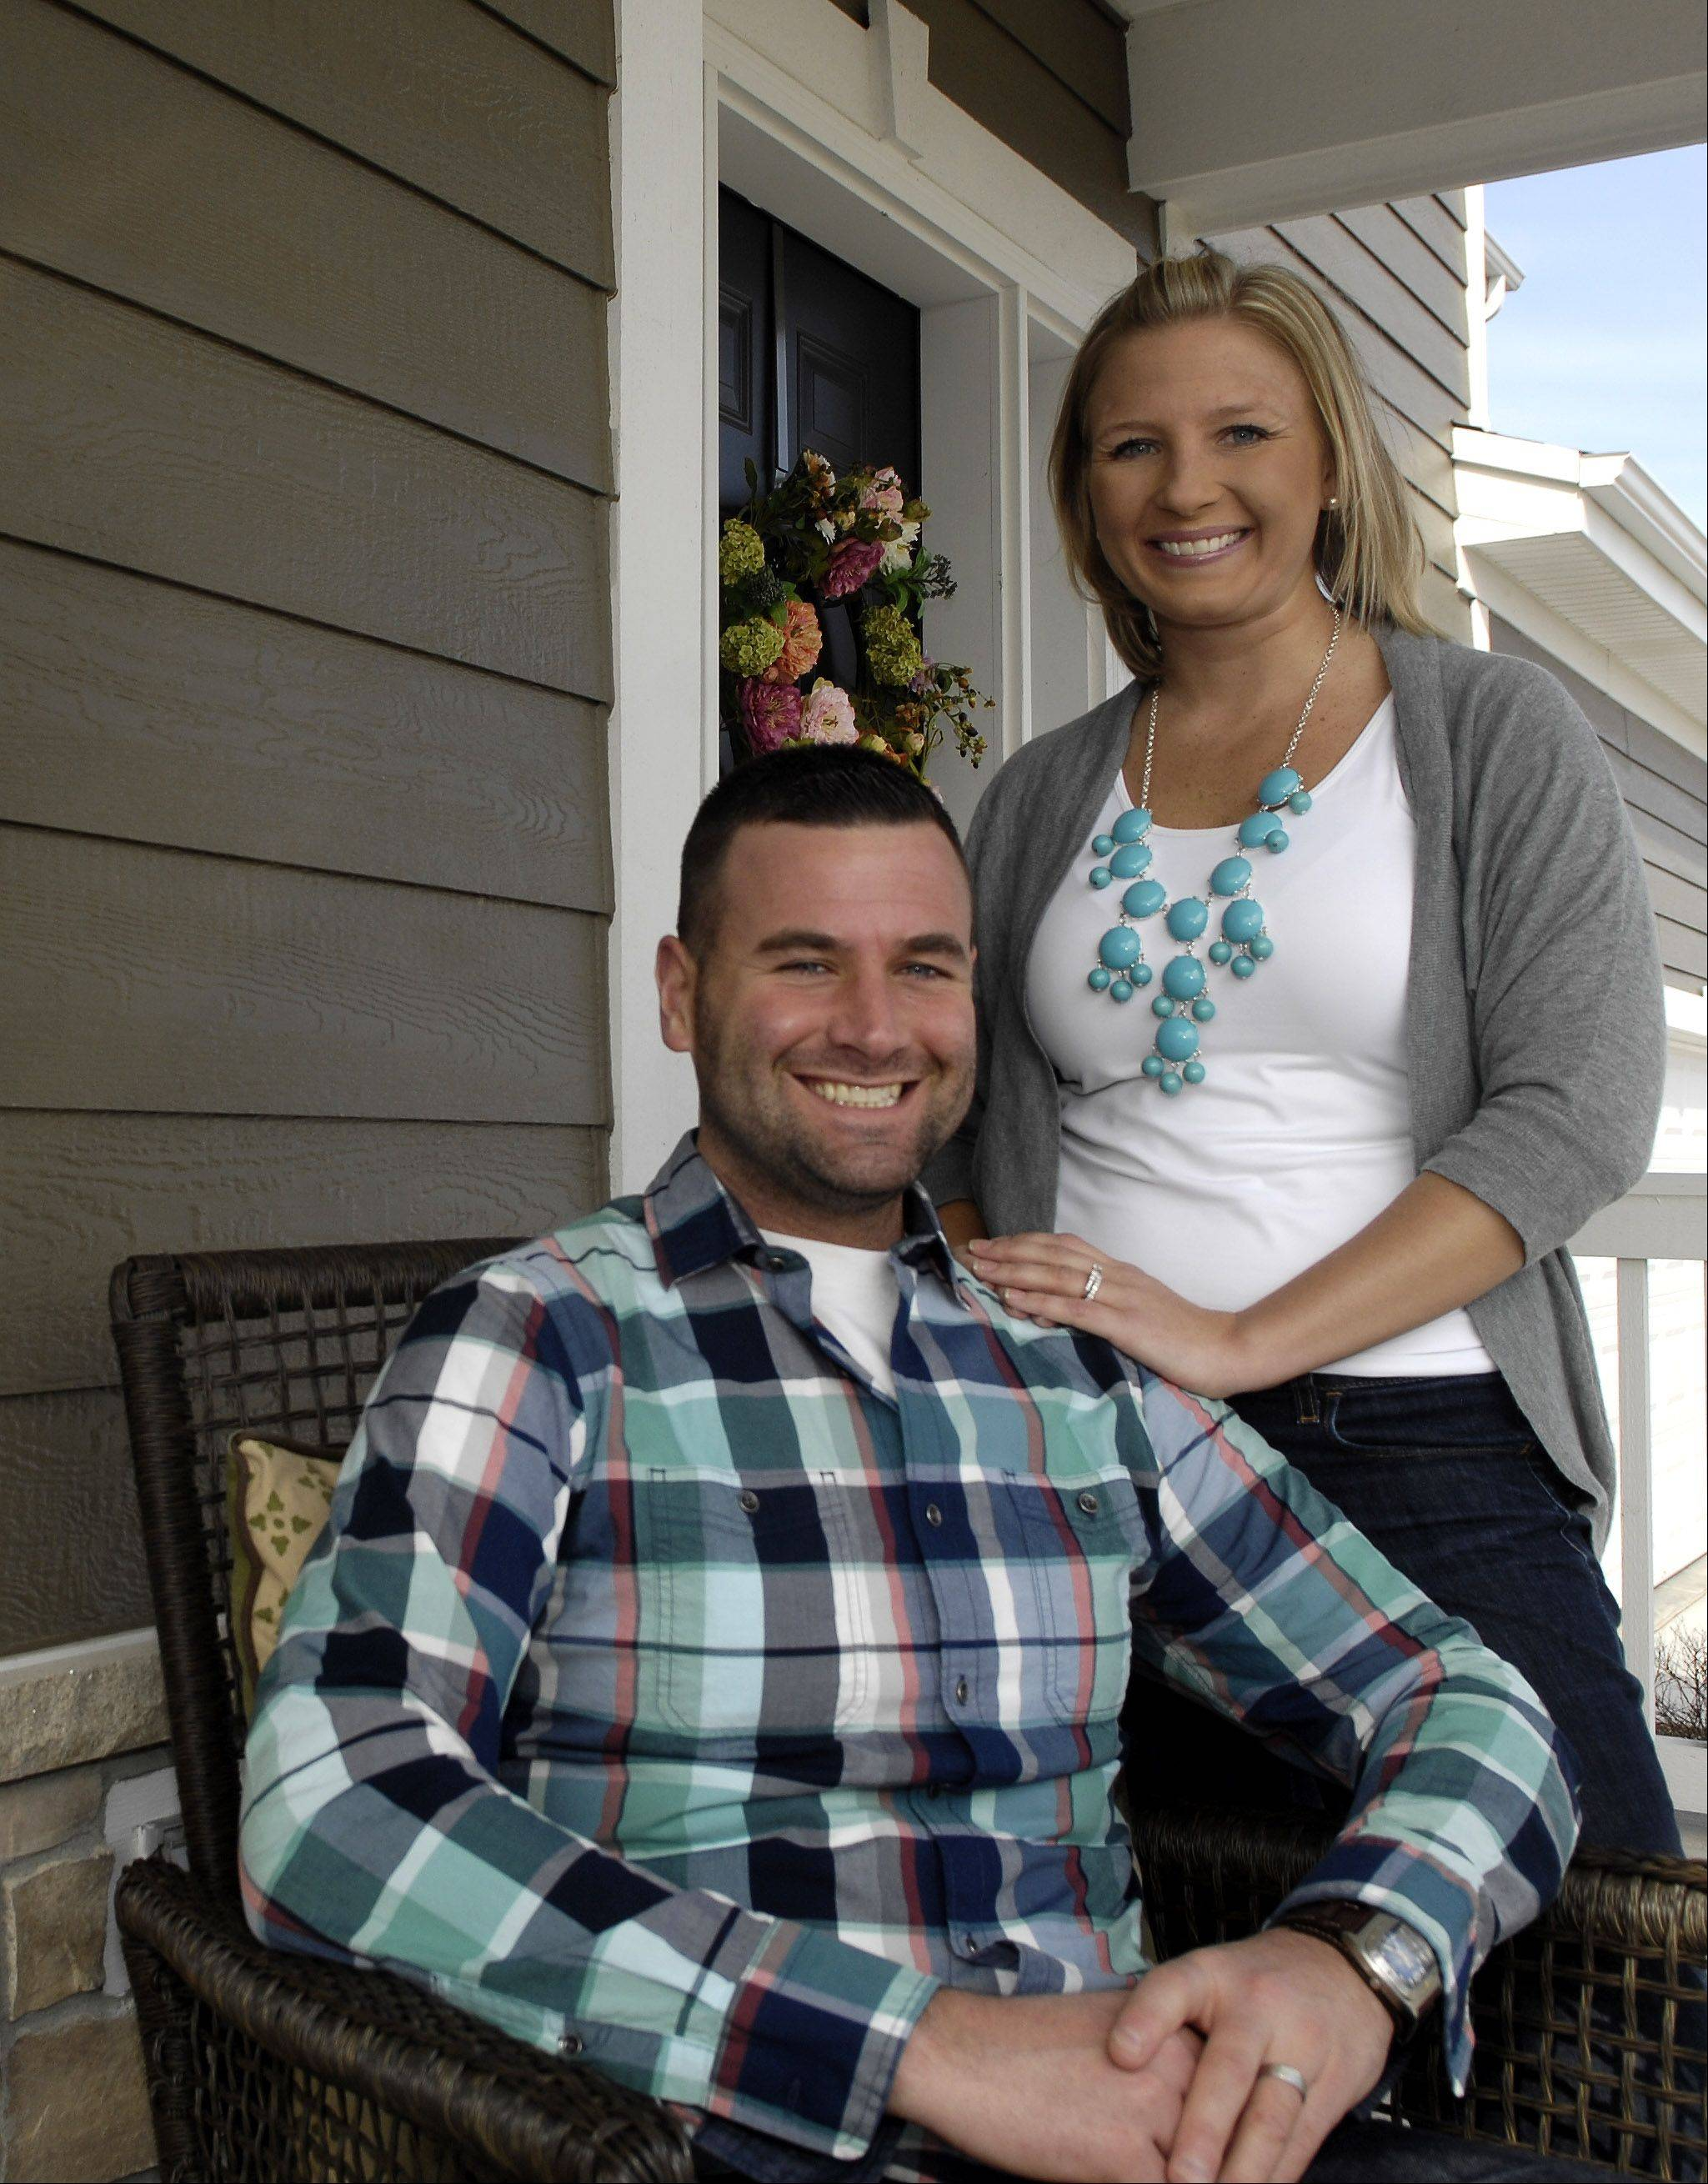 First-time homebuyers DJ and Michelle O'Brien are happy with their new home at Highland Woods in Elgin.